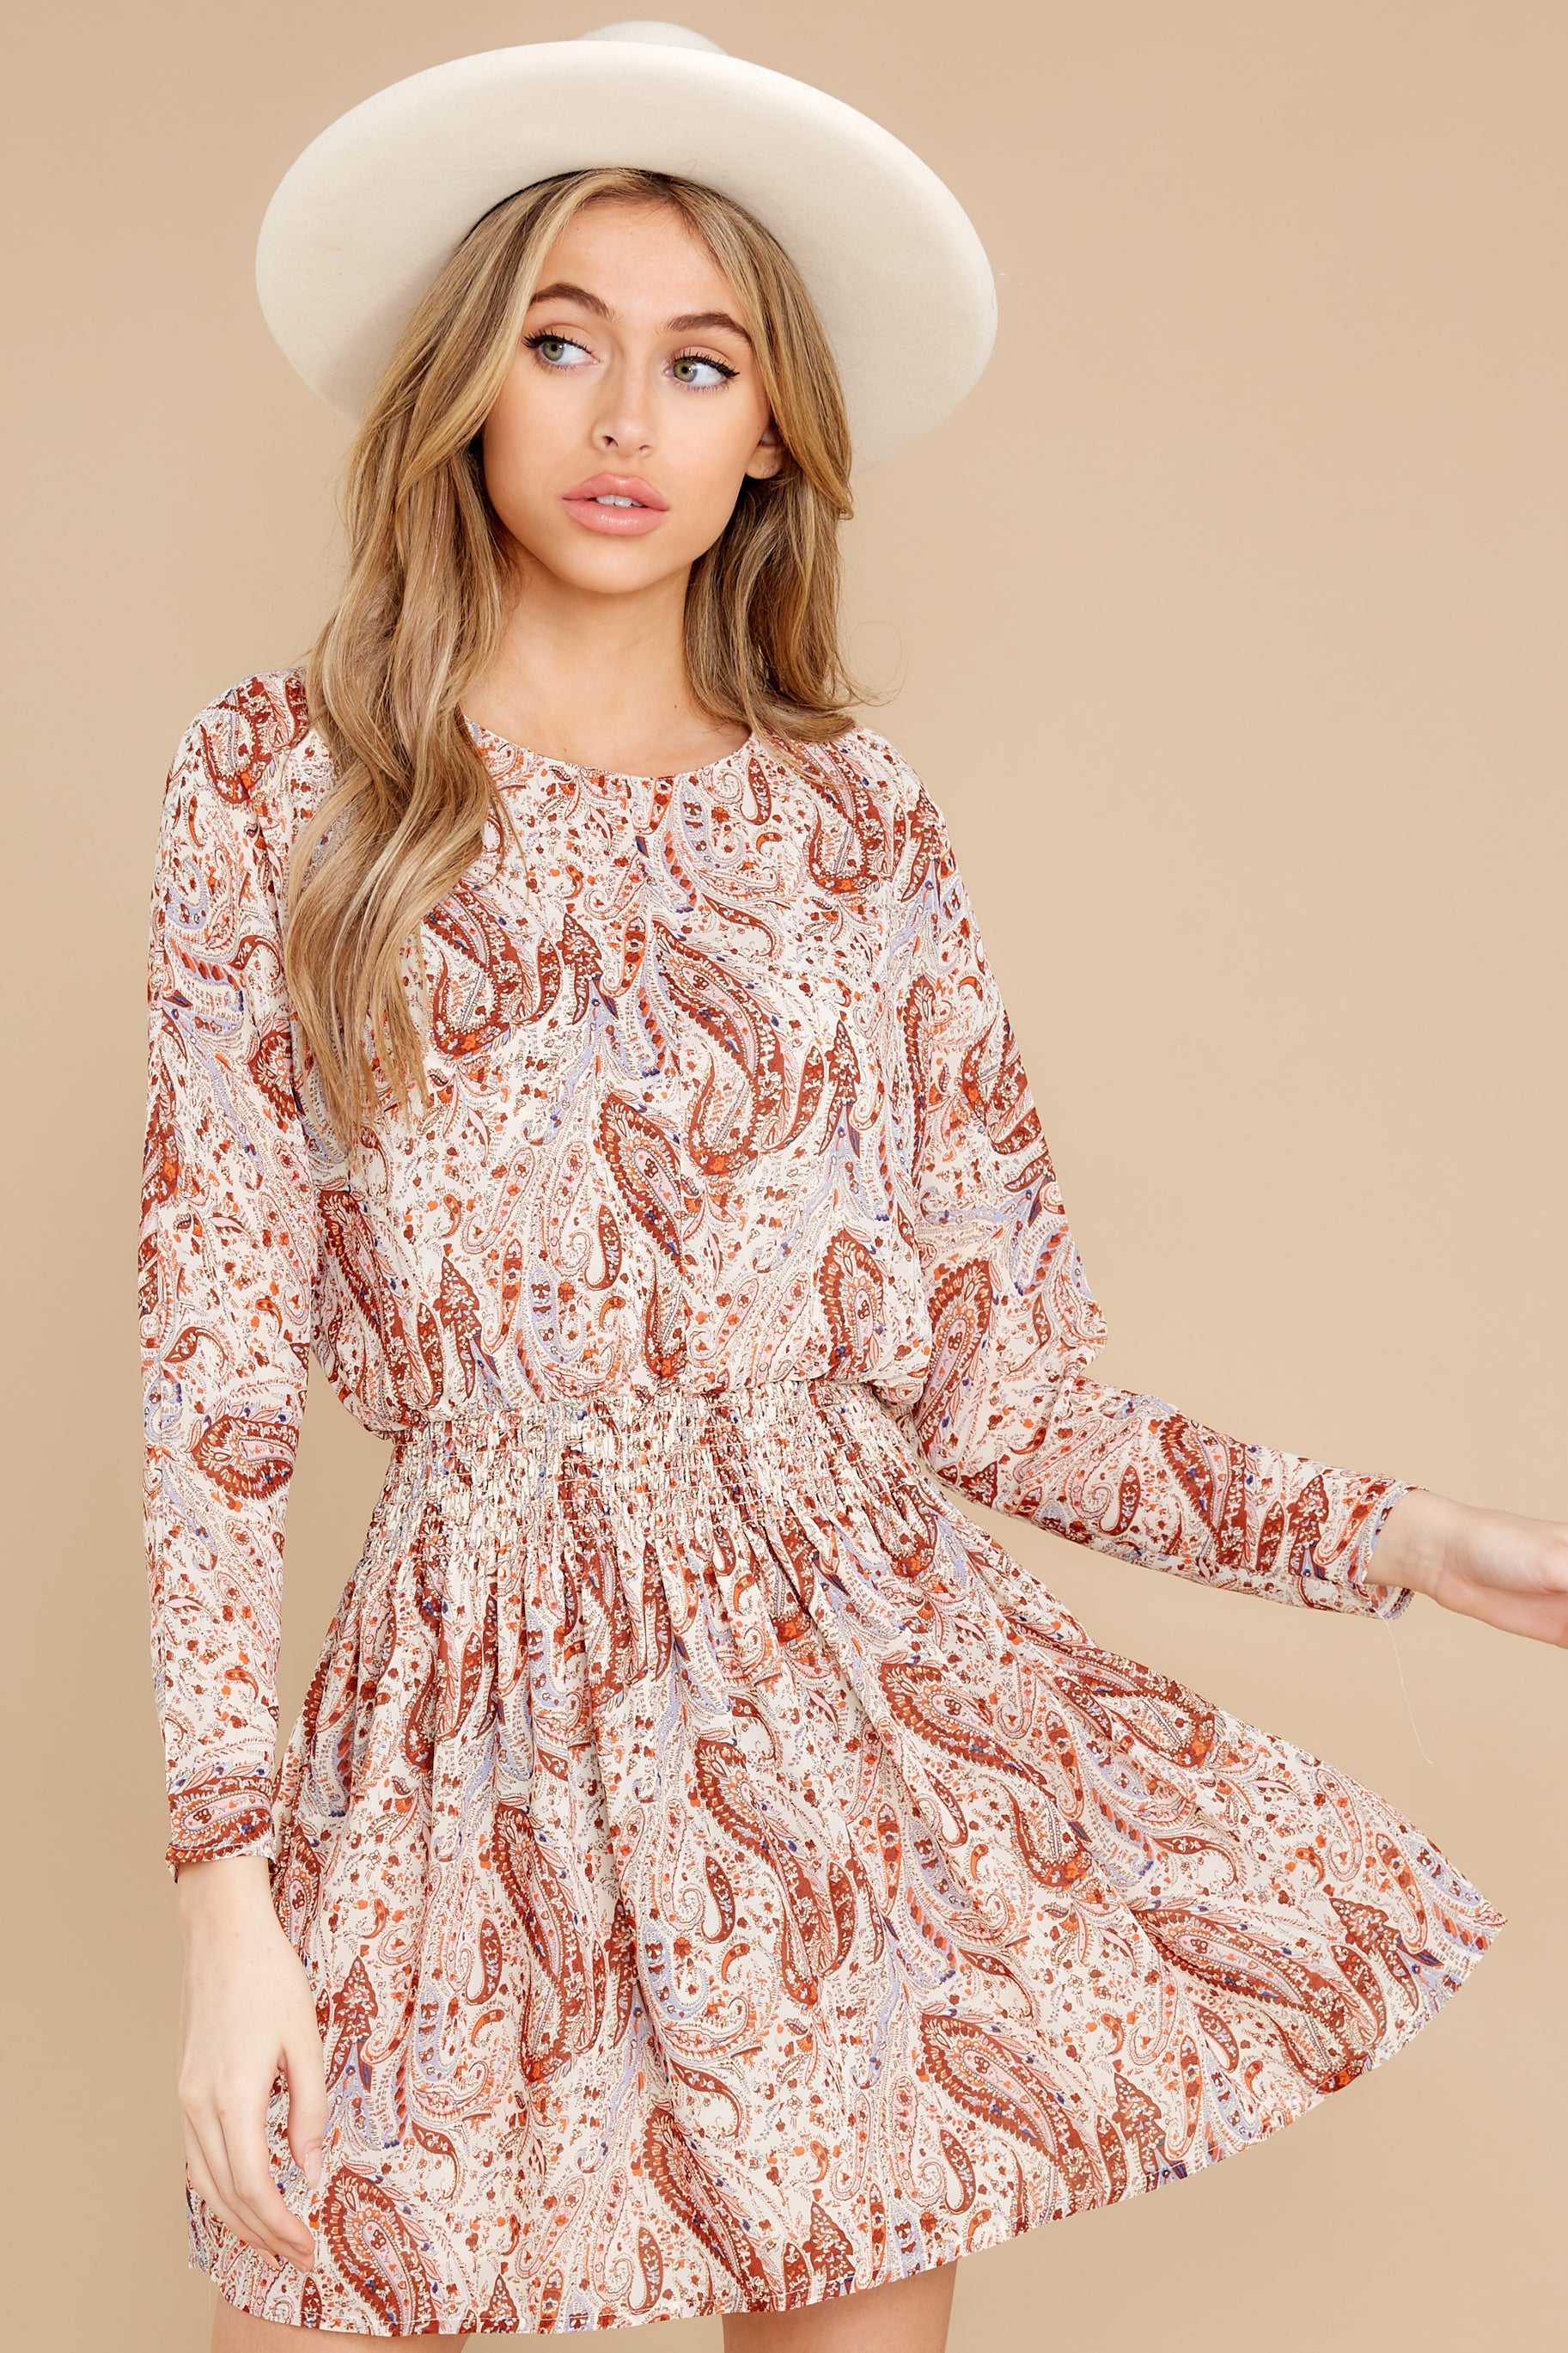 2 Woodstock Multi Paisley Mini Dress at reddress.com